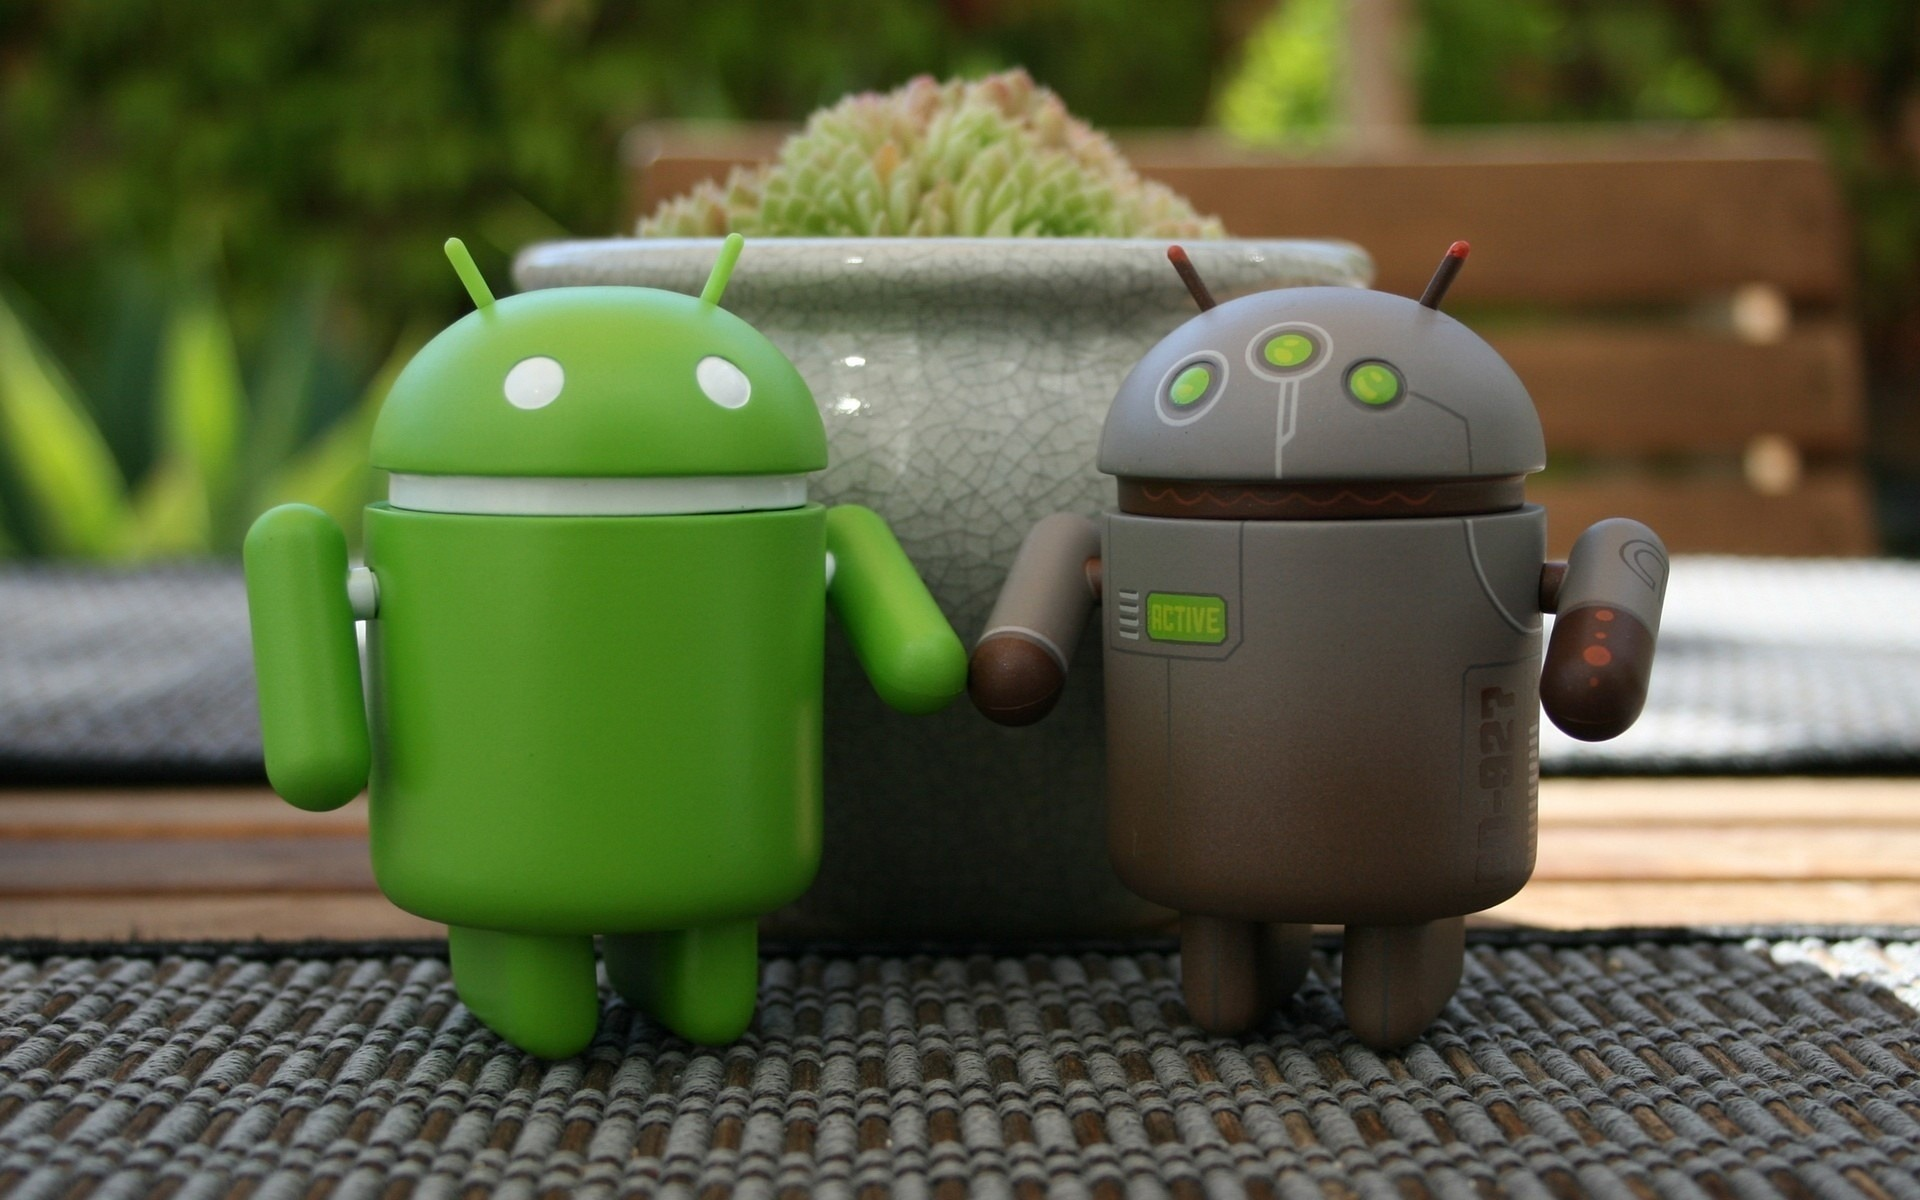 Top 5 custom ROMs for Android for rooting your phone